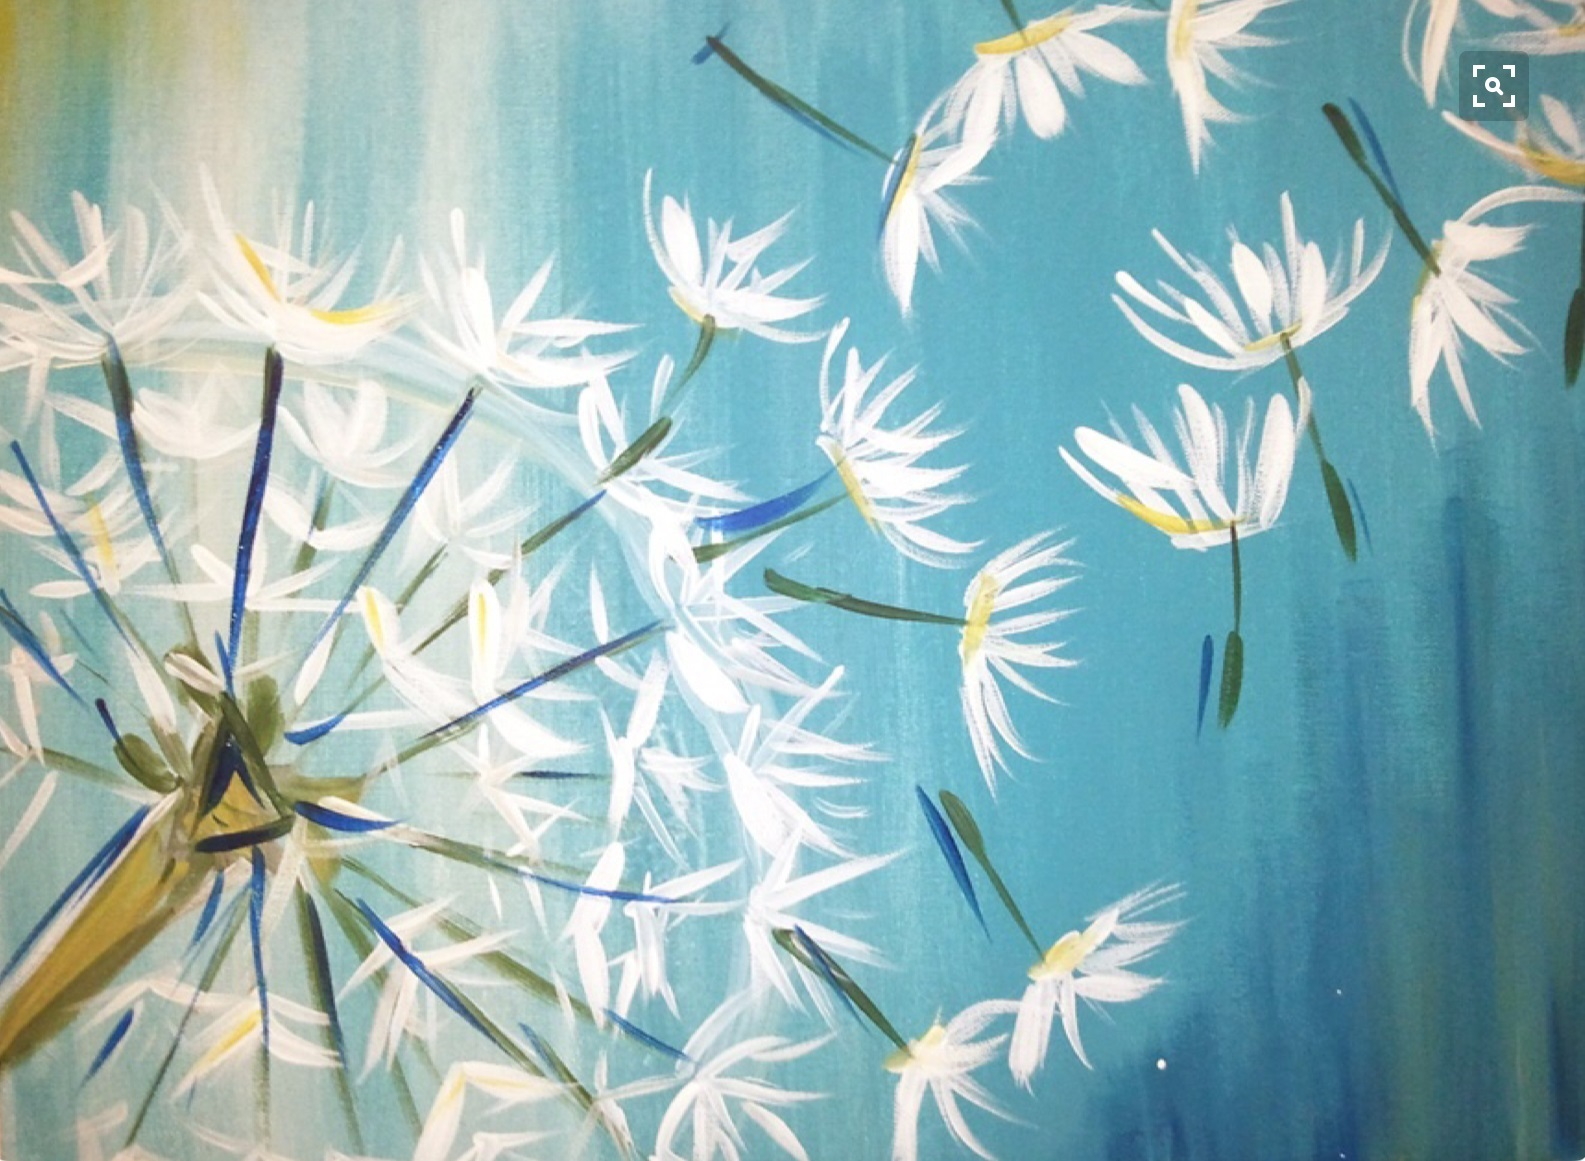 Paint Afternoon - Saturday March 2, 2019, 1 - 4pmJoin Chebucto Links and Empty Nest Designs for a fun afternoon. No expertise necessary.$40.00 (incl taxes) Refreshments included50/50 Draw & Door PrizeTickets can be obtained from the Chebucto Links office, or via e-Transfer (info@chebuctolinks.ca). Please supply name & address to obtain ticket(s).